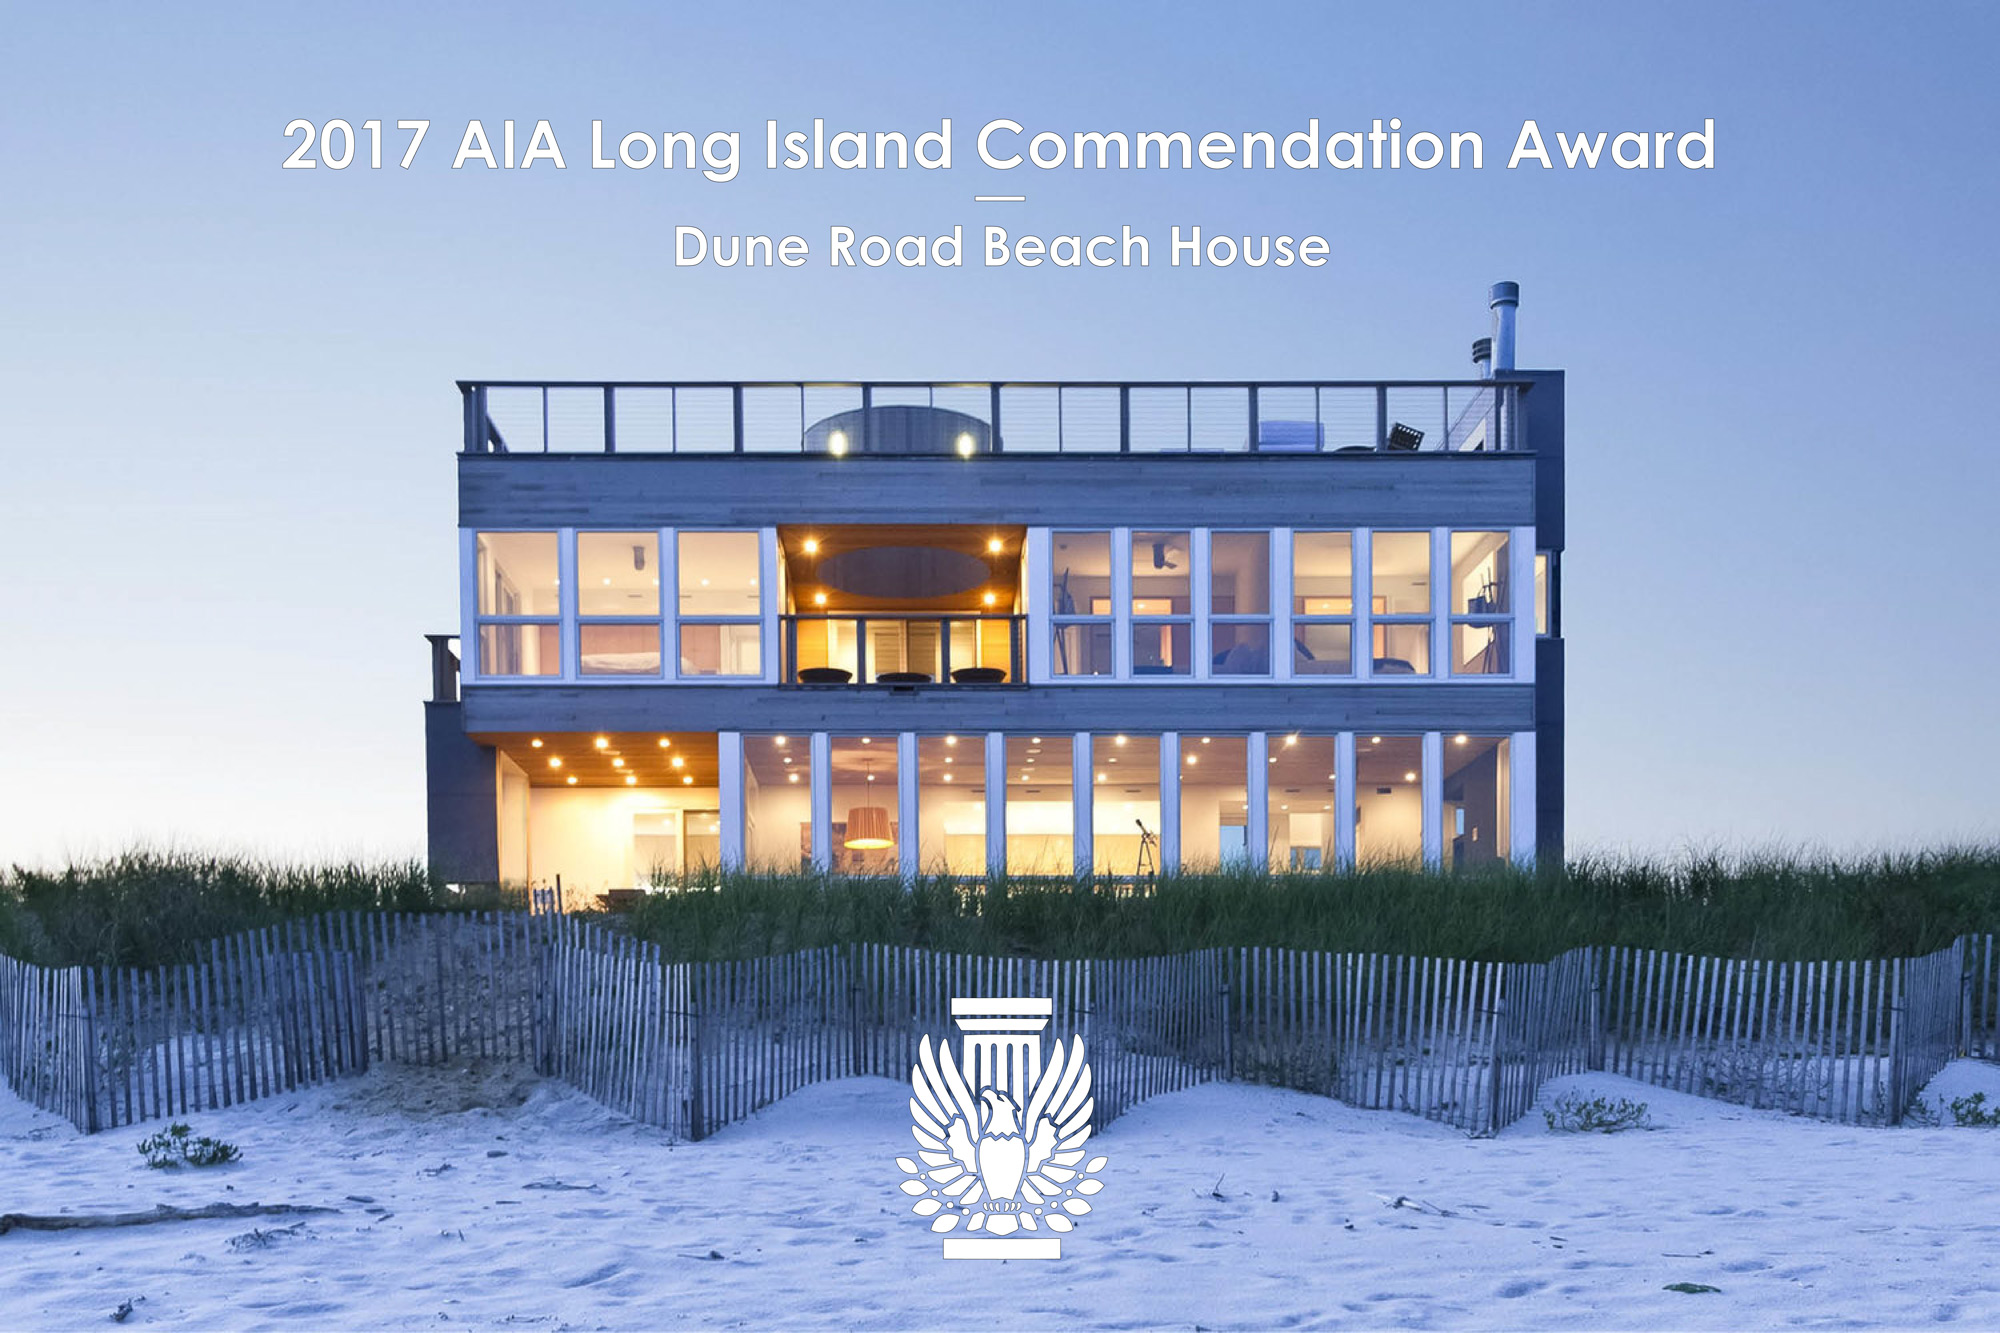 res4-resolution-4-architecture-modern-modular-home-prefab-dune-road-beach-house-aia-long-island-commendation-award-logo.jpg